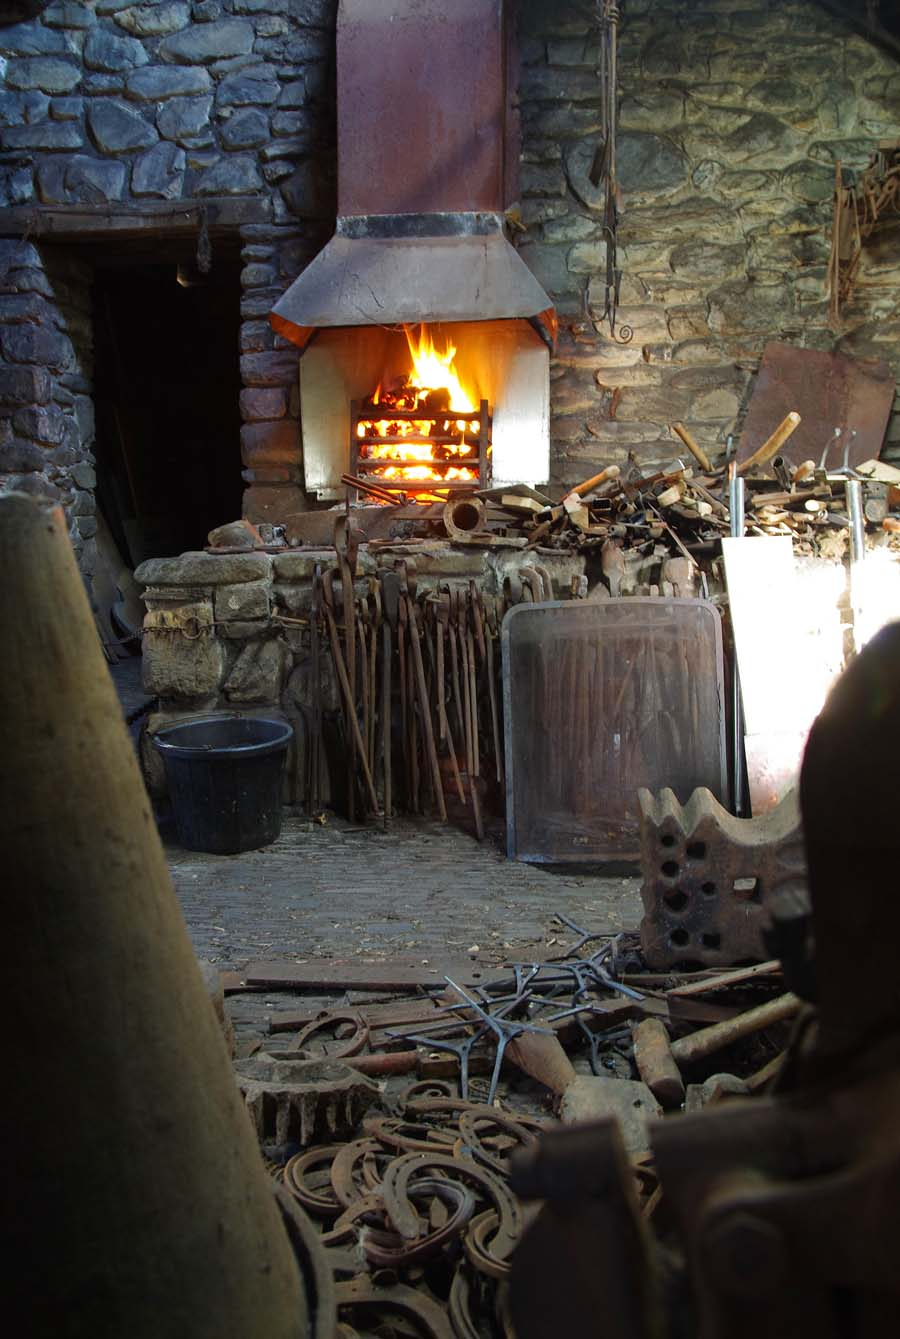 Inside the Blacksmiths workshop